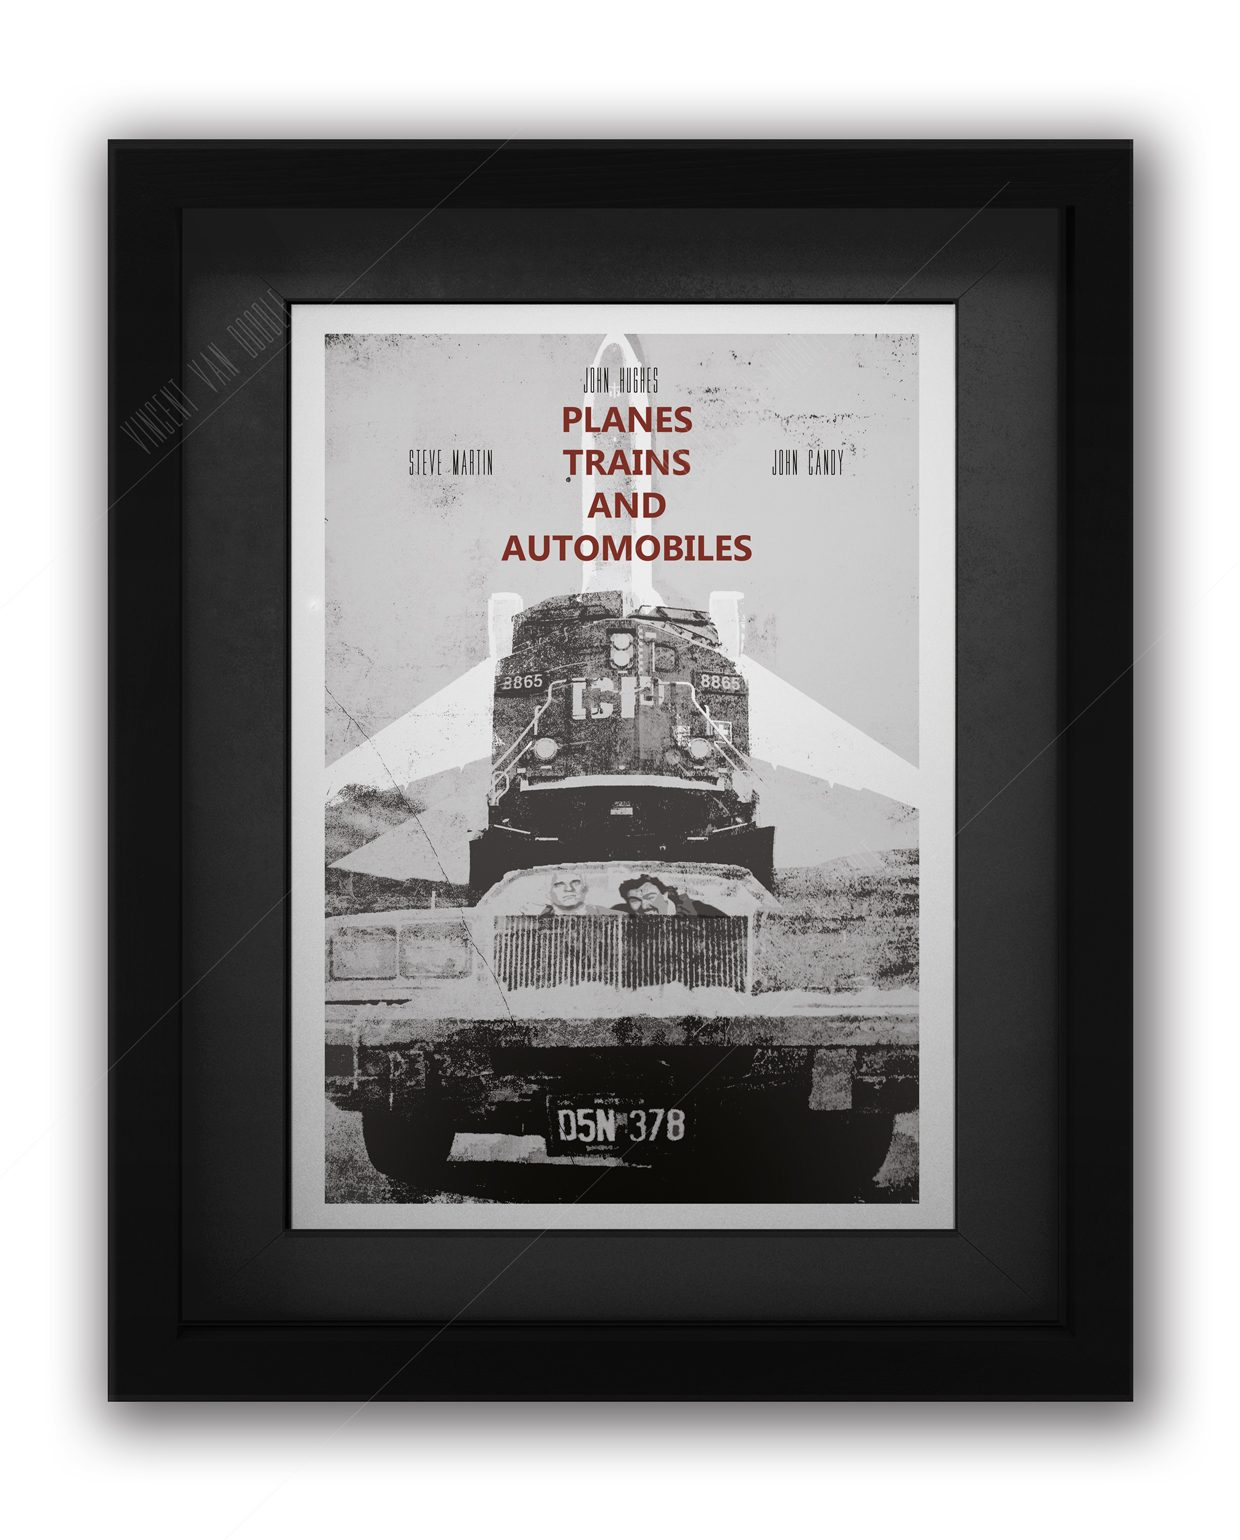 Trains-planes-and-automobiles-Framed